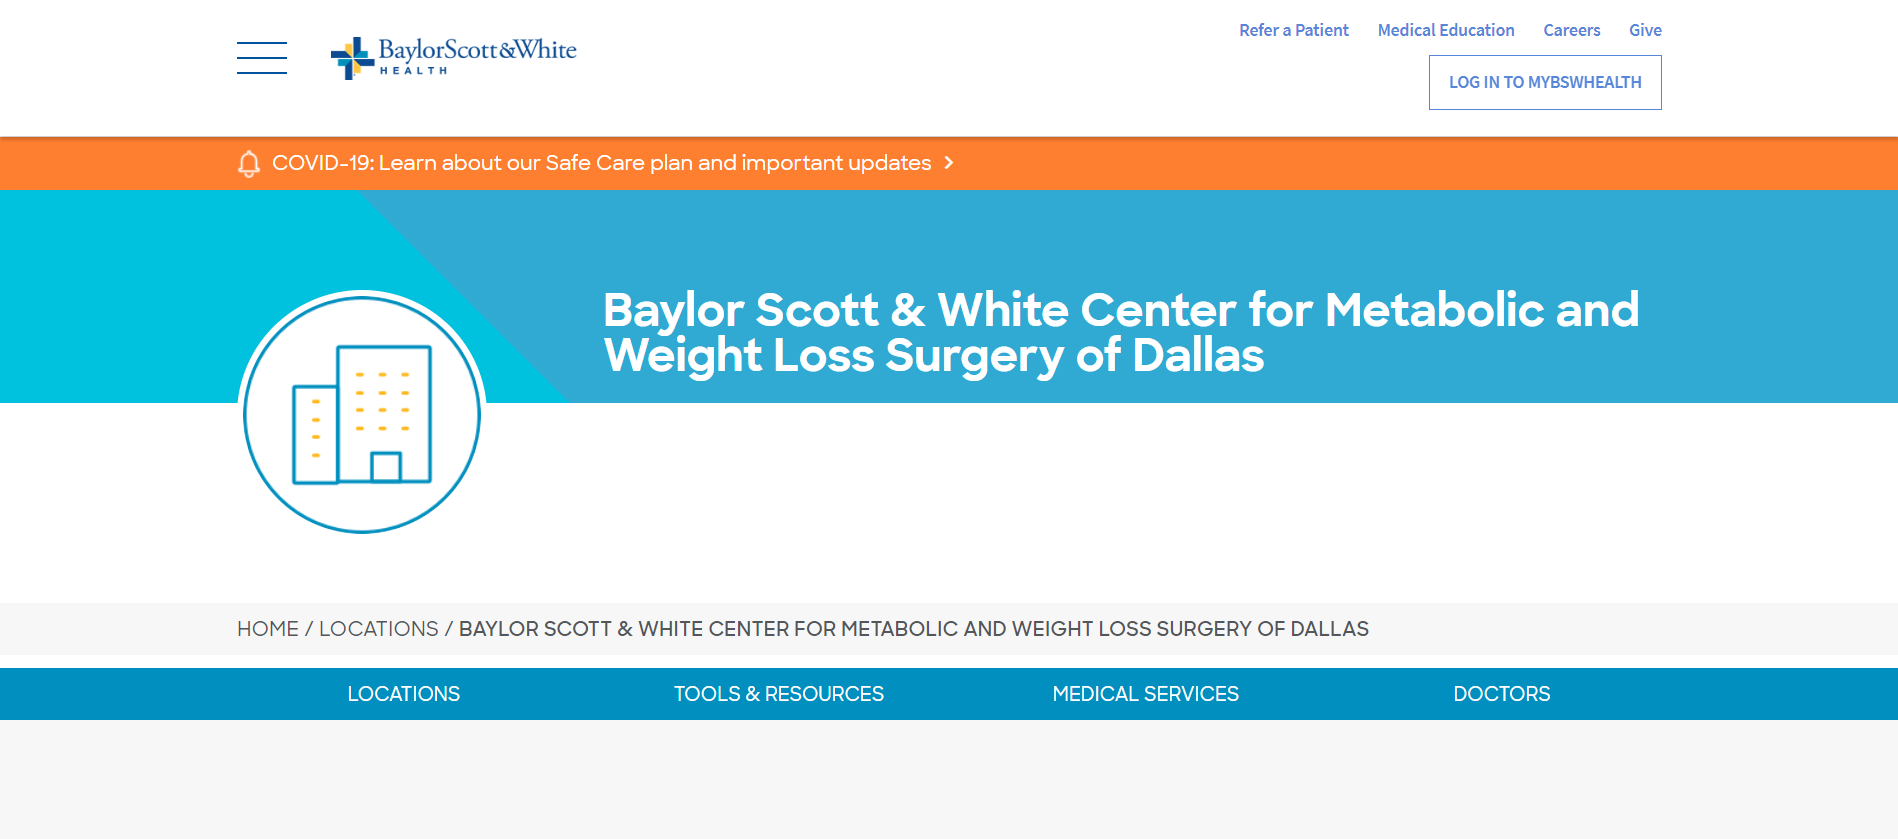 Baylor Scott & White Center for Metabolic and Weight Loss Surgery of Dallas